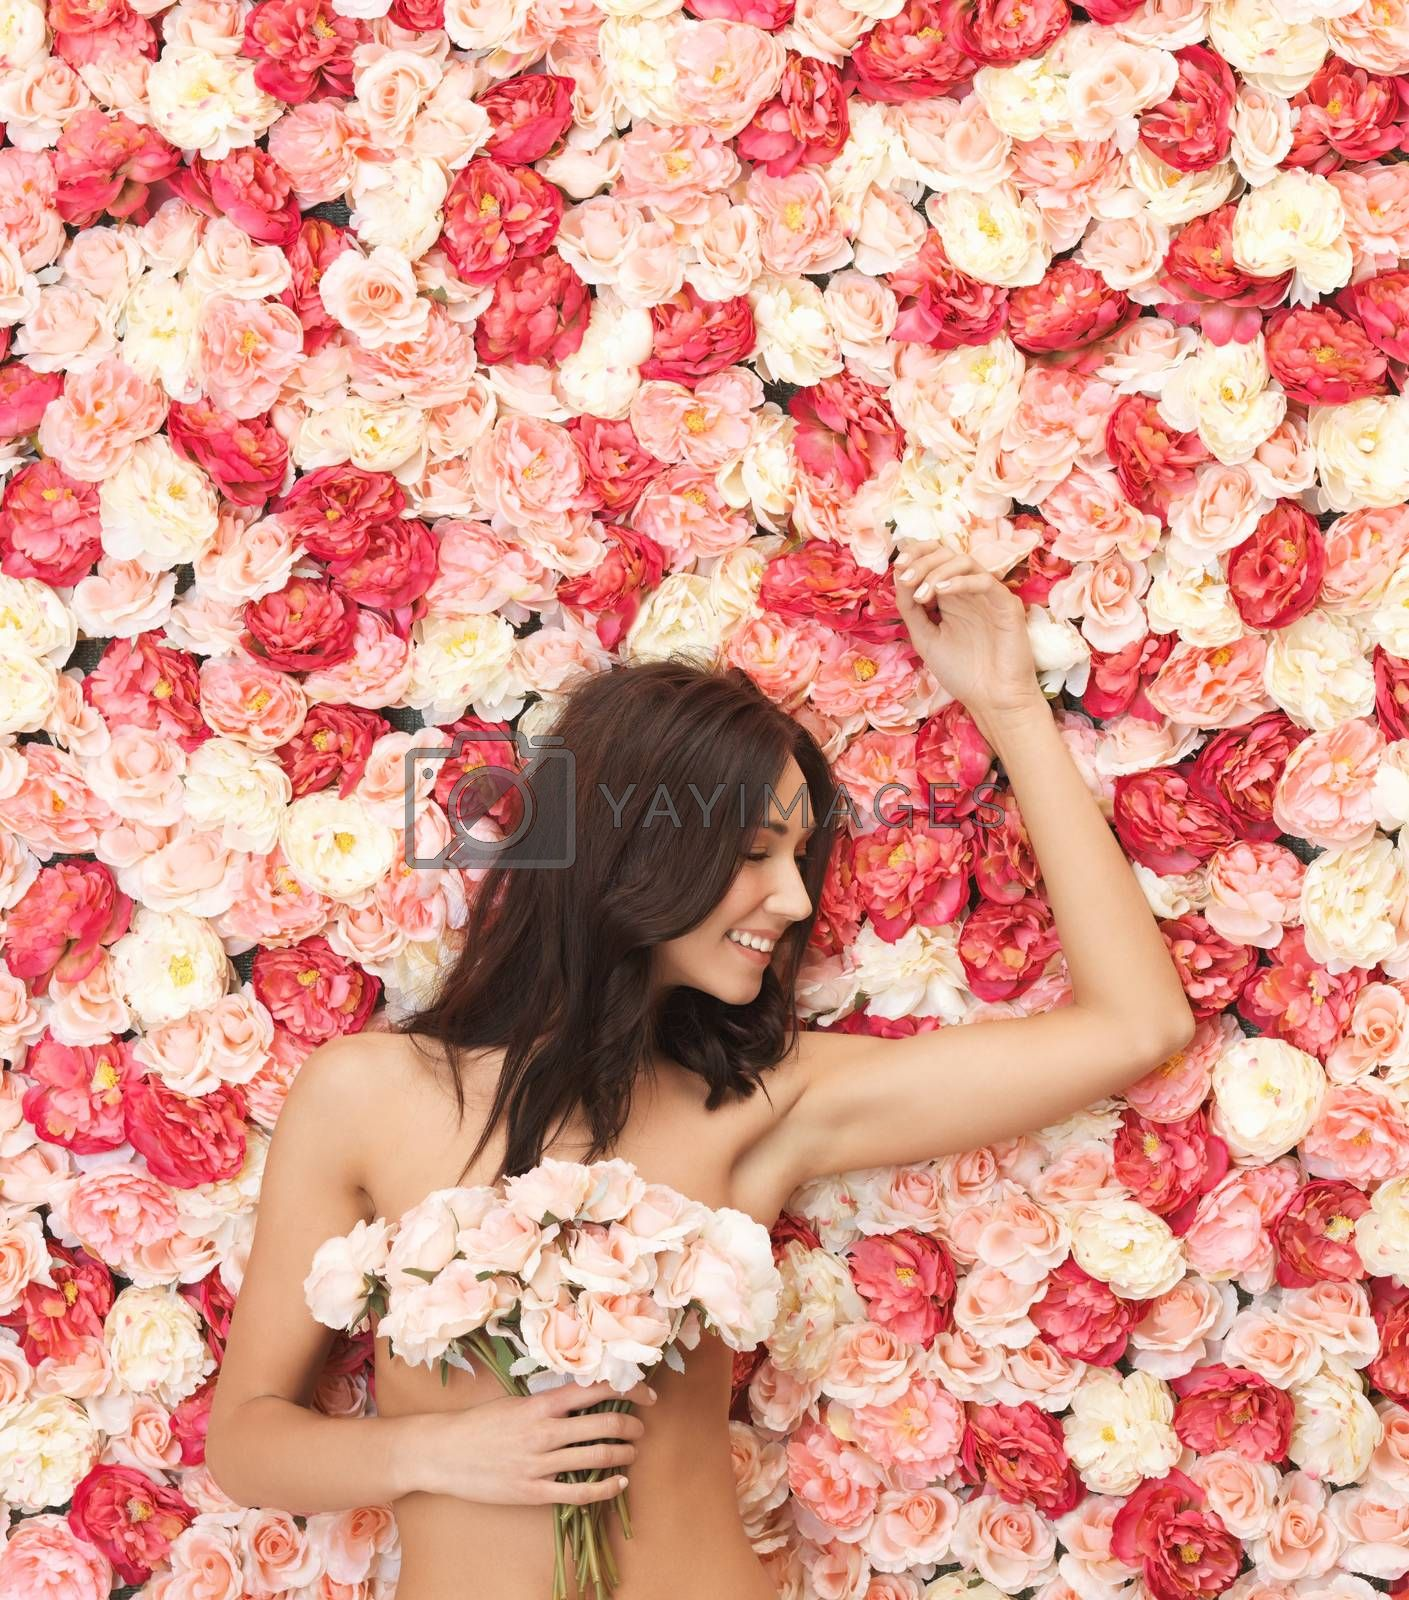 woman and background full of roses by dolgachov